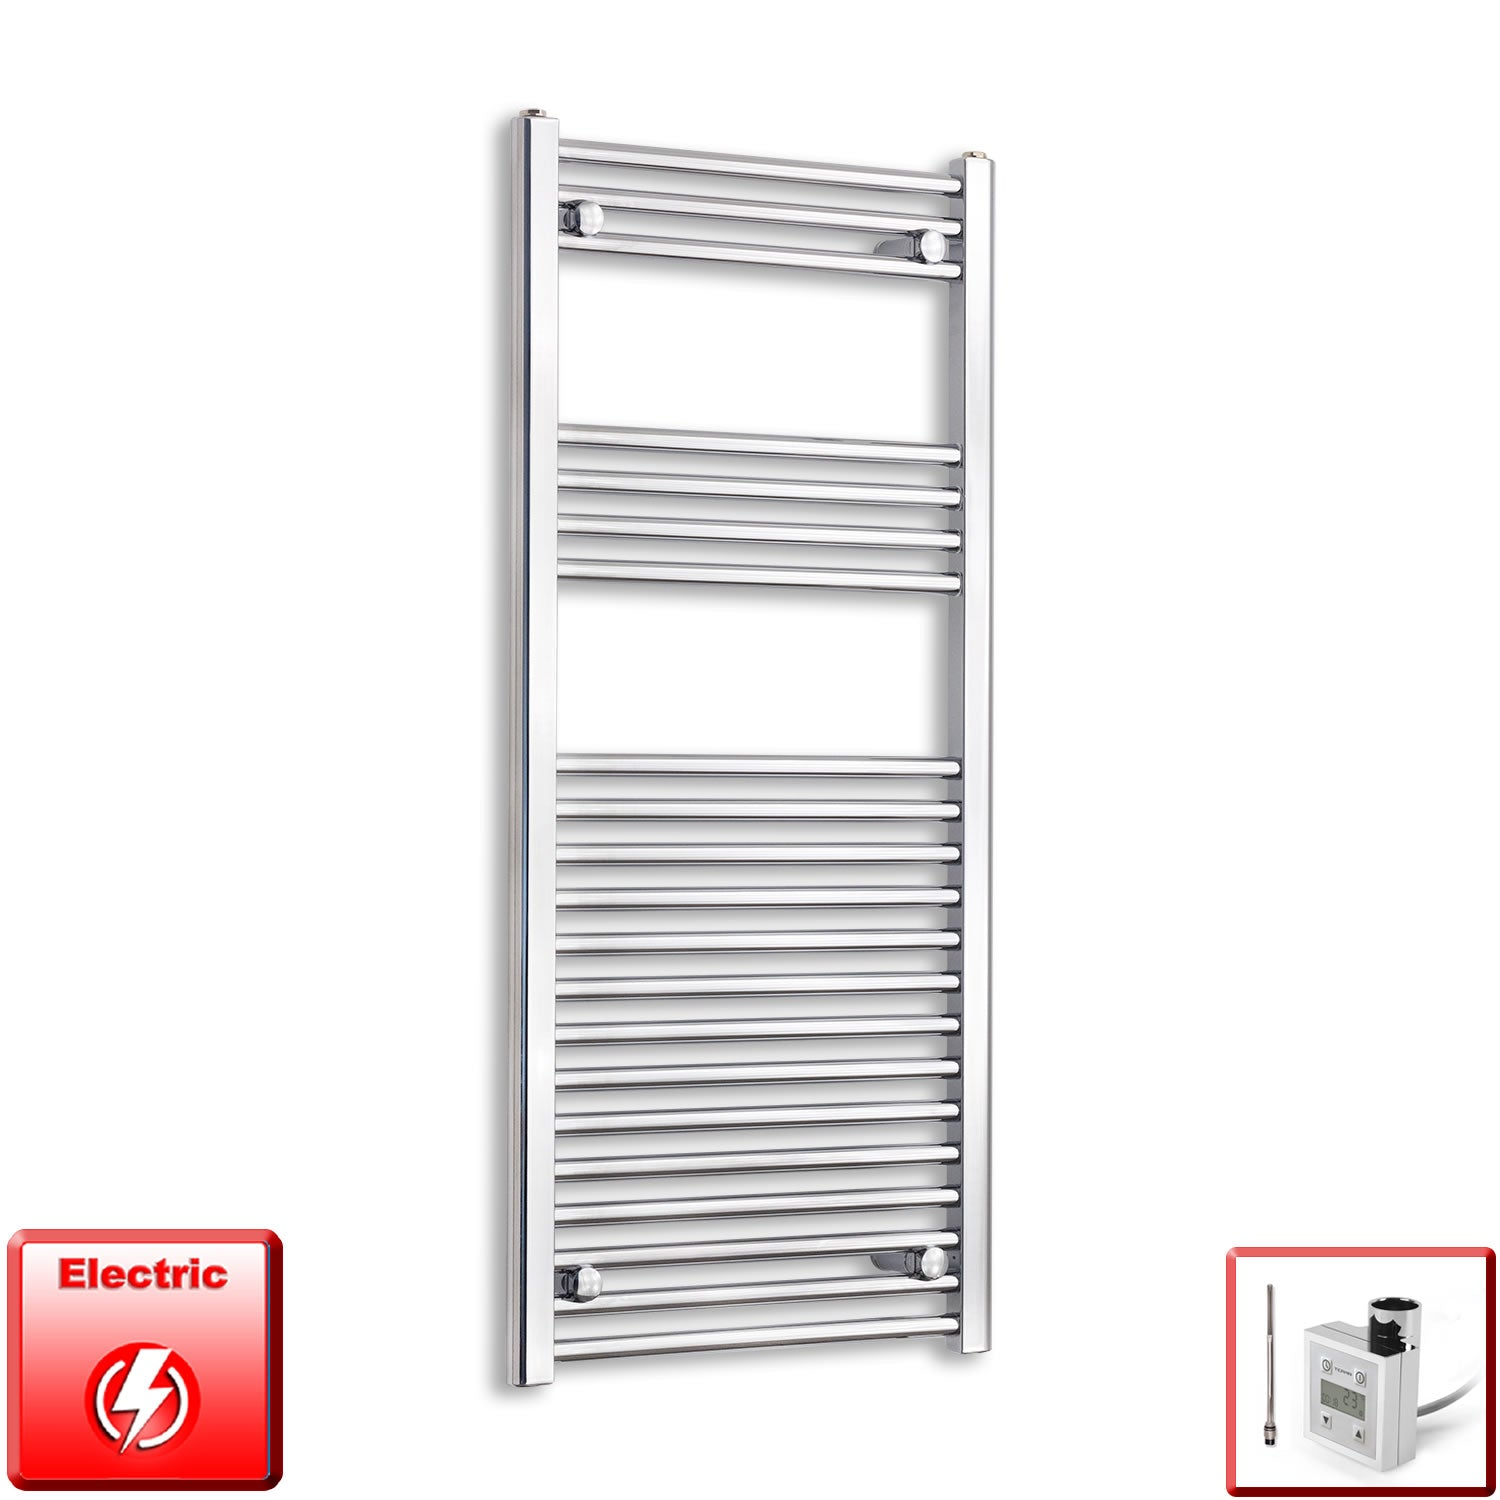 450mm Wide 1100mm High Pre-Filled Black Electric Towel Rail Radiator With Thermostatic KTX3 Element